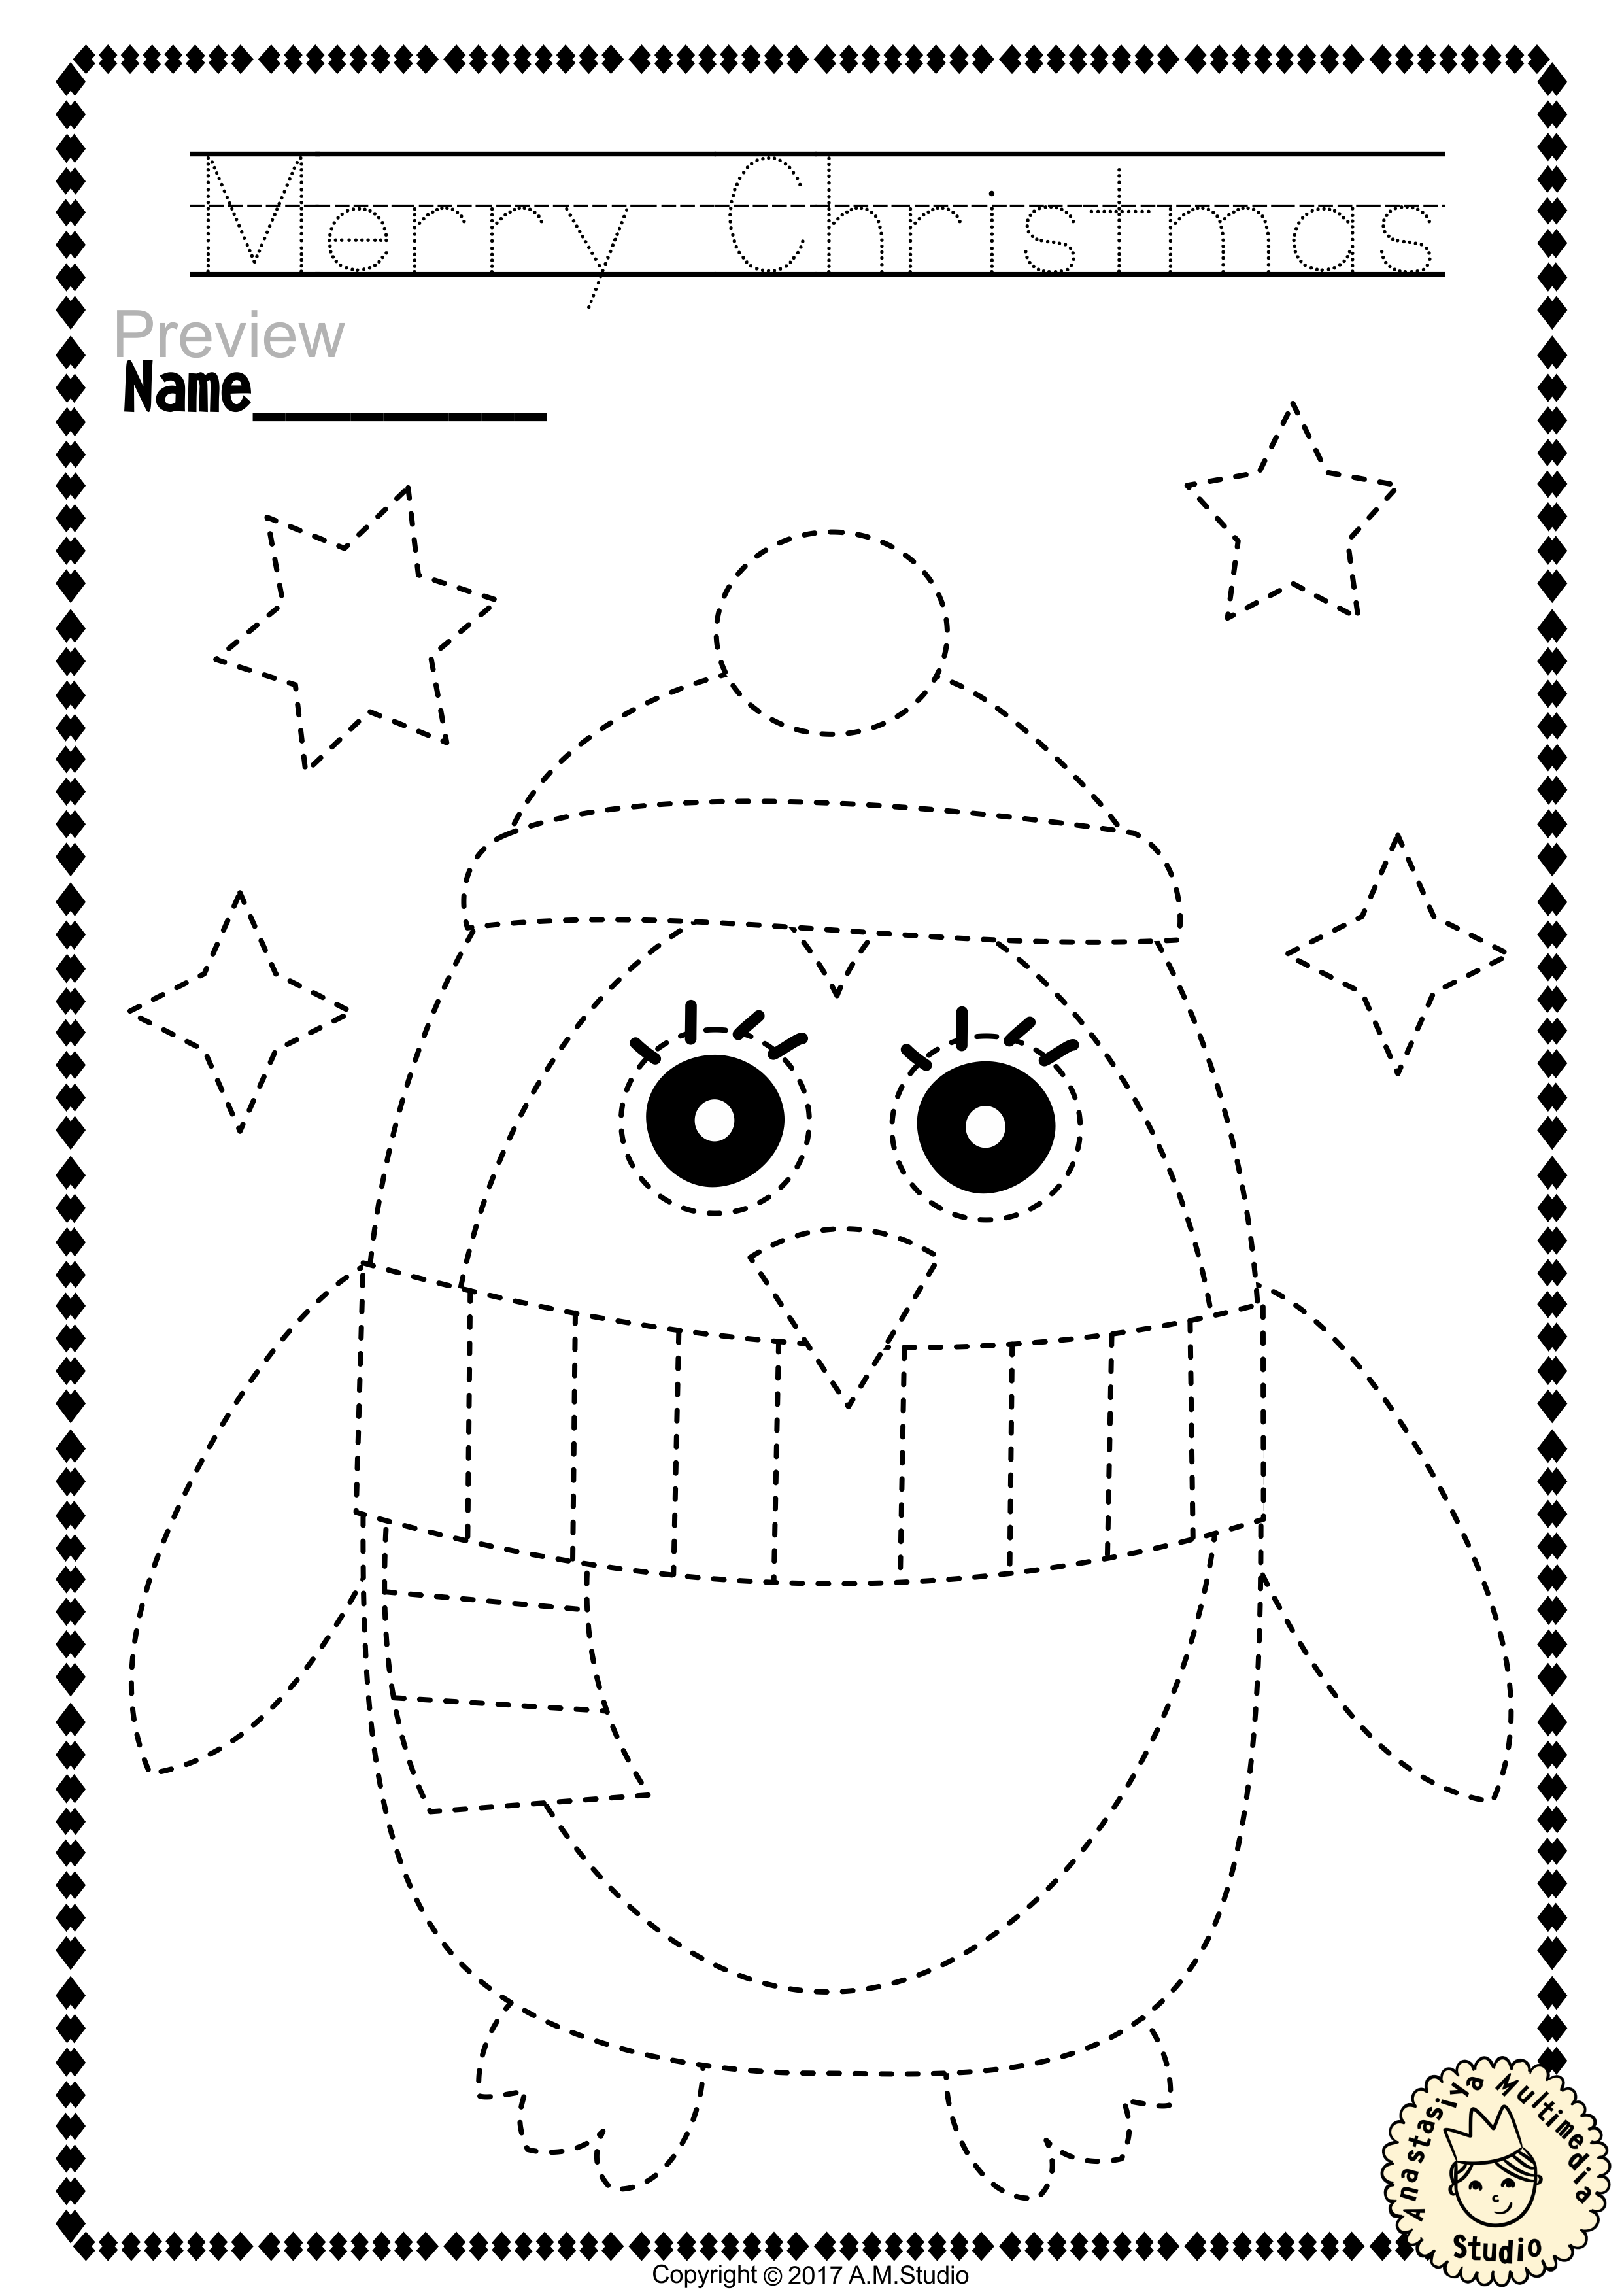 worksheet Tracing And Colouring Worksheets christmas trace and color pages fine motor skills pre writing help your child develop their with special education activitiesco